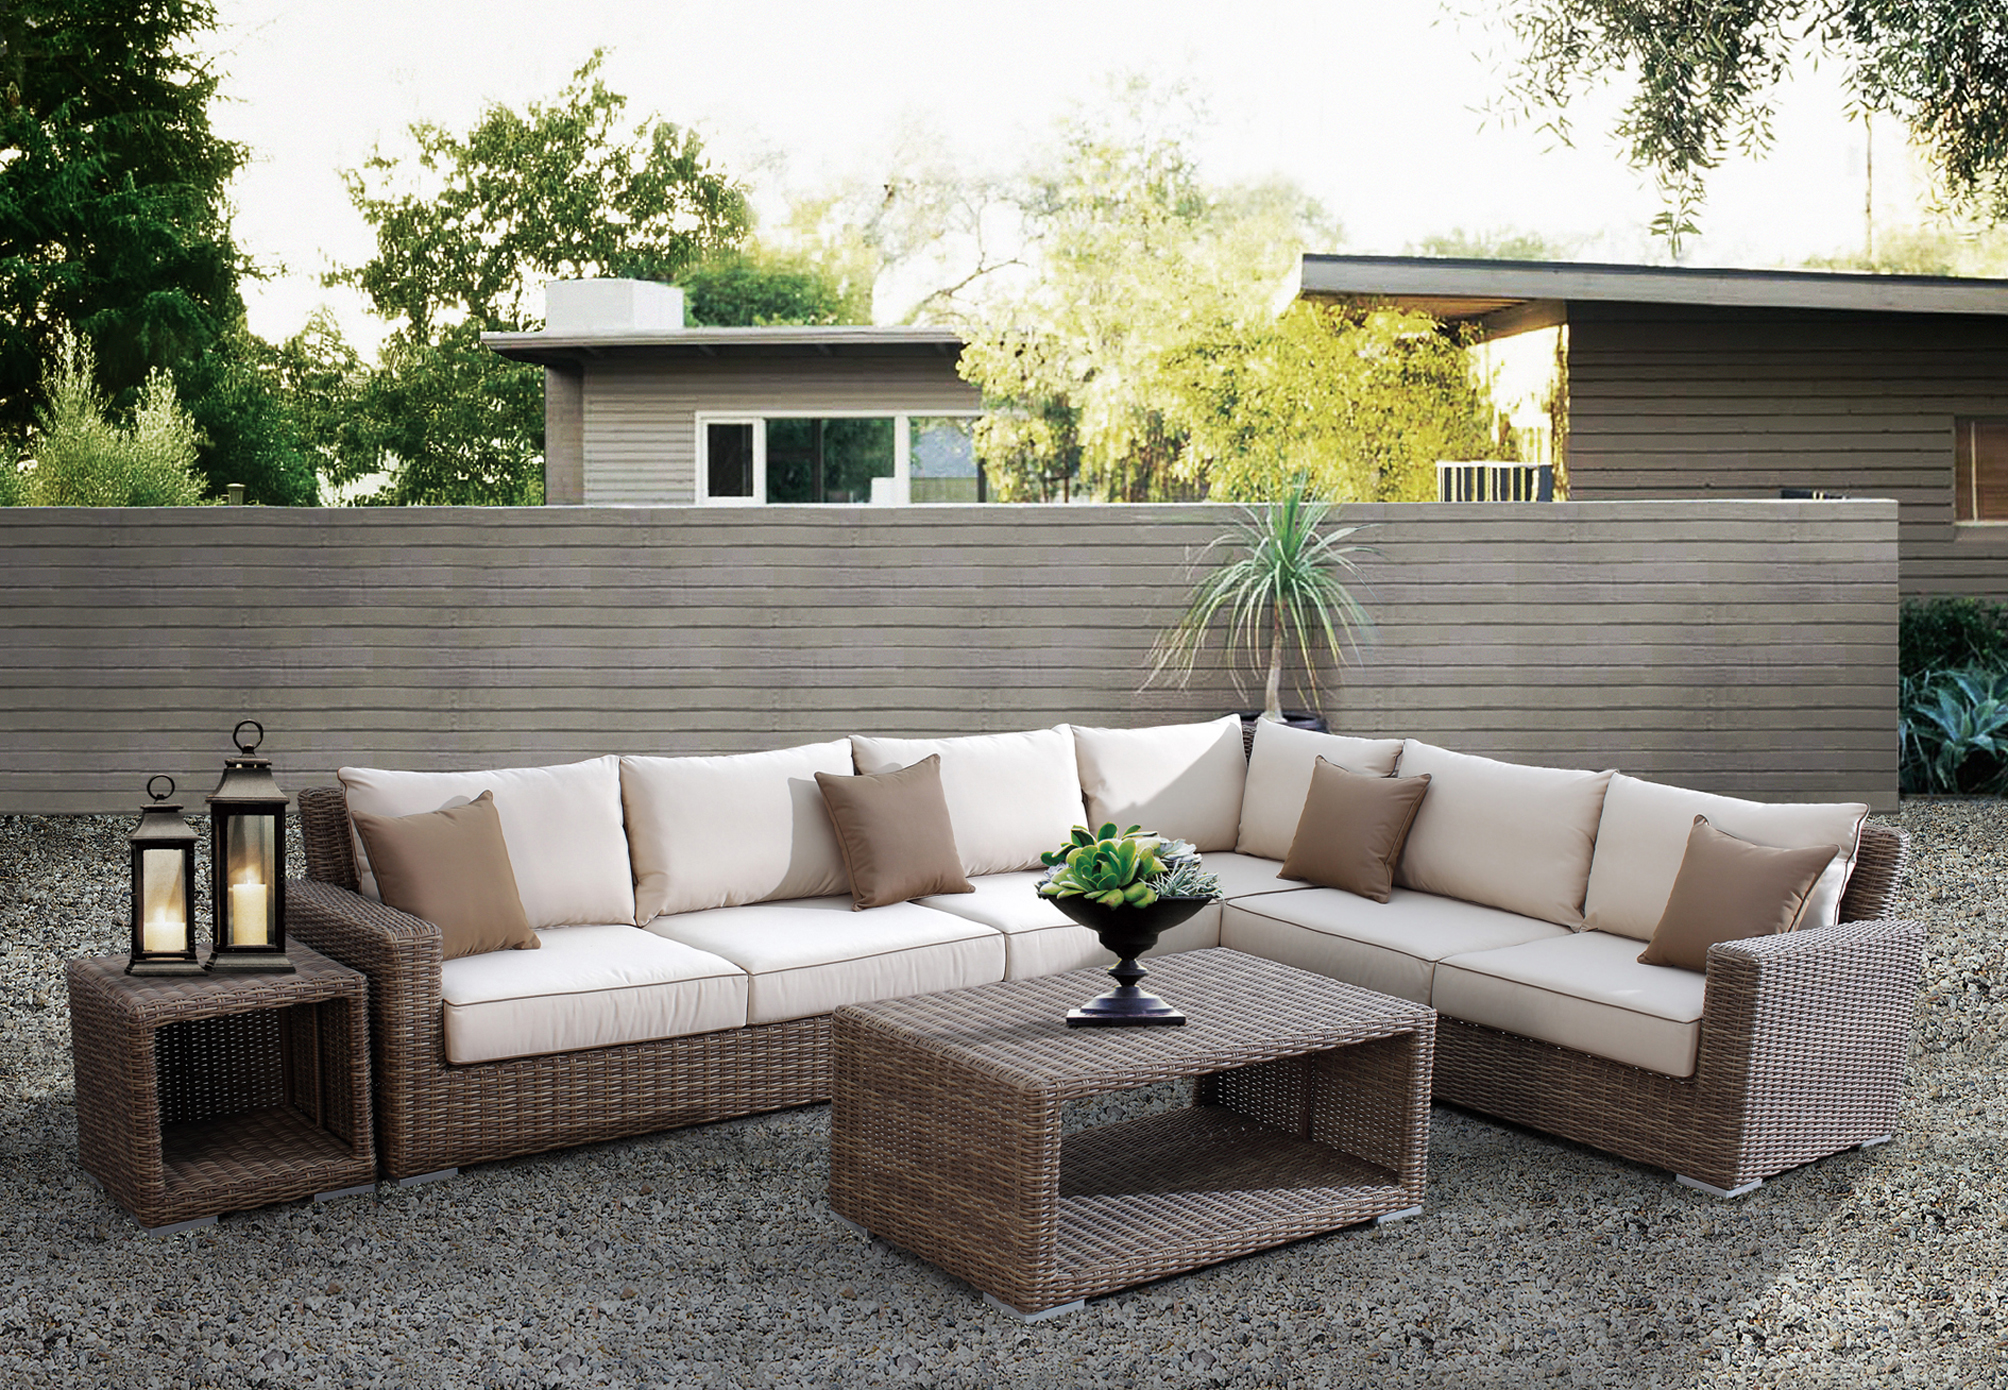 Redesigning Your Home With Outdoor Wicker Patio Furniture Rattan And Minh  Thy